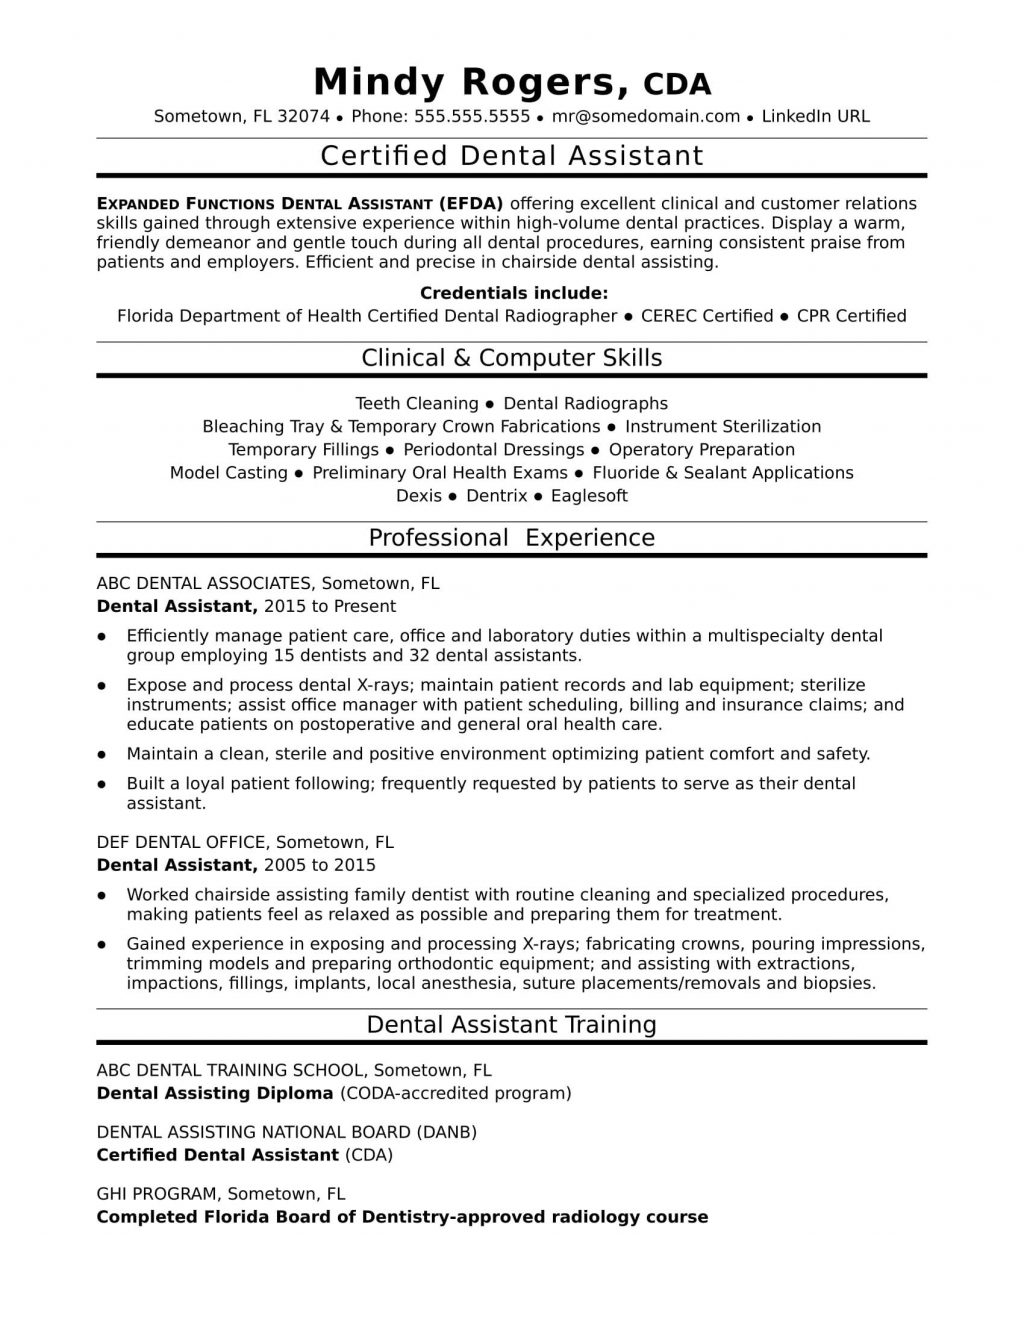 008 Research Paper Define In Spanish Solar Energy Vs Nuclear Essay Frida Kahlo Free Questions Conclusion Outline Extended Dental20 Striking Full